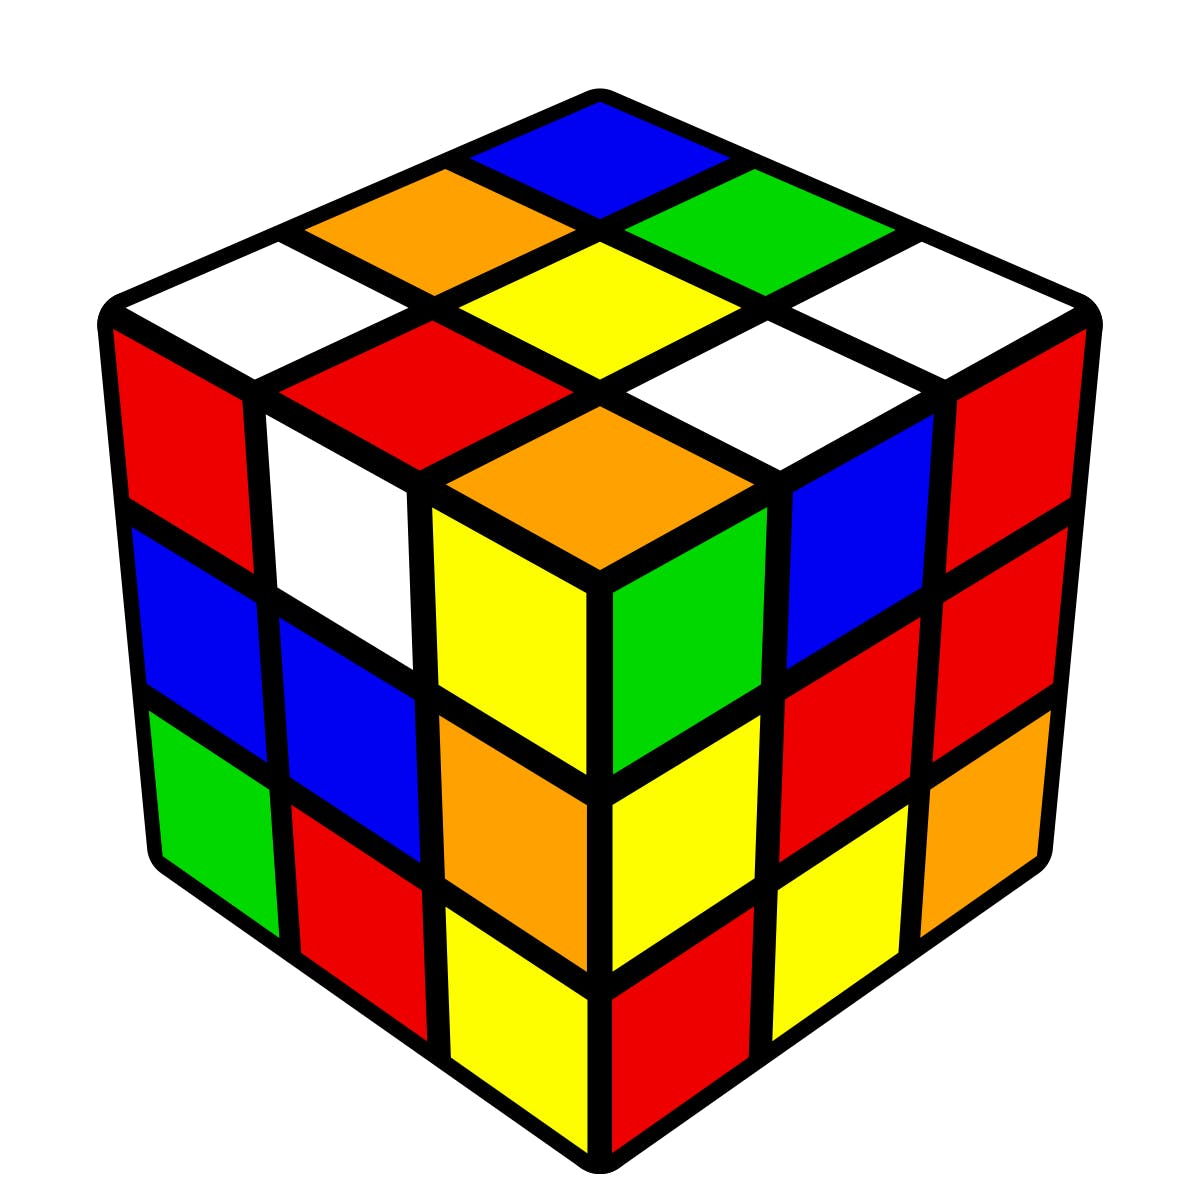 An image of a Rubik's Cube